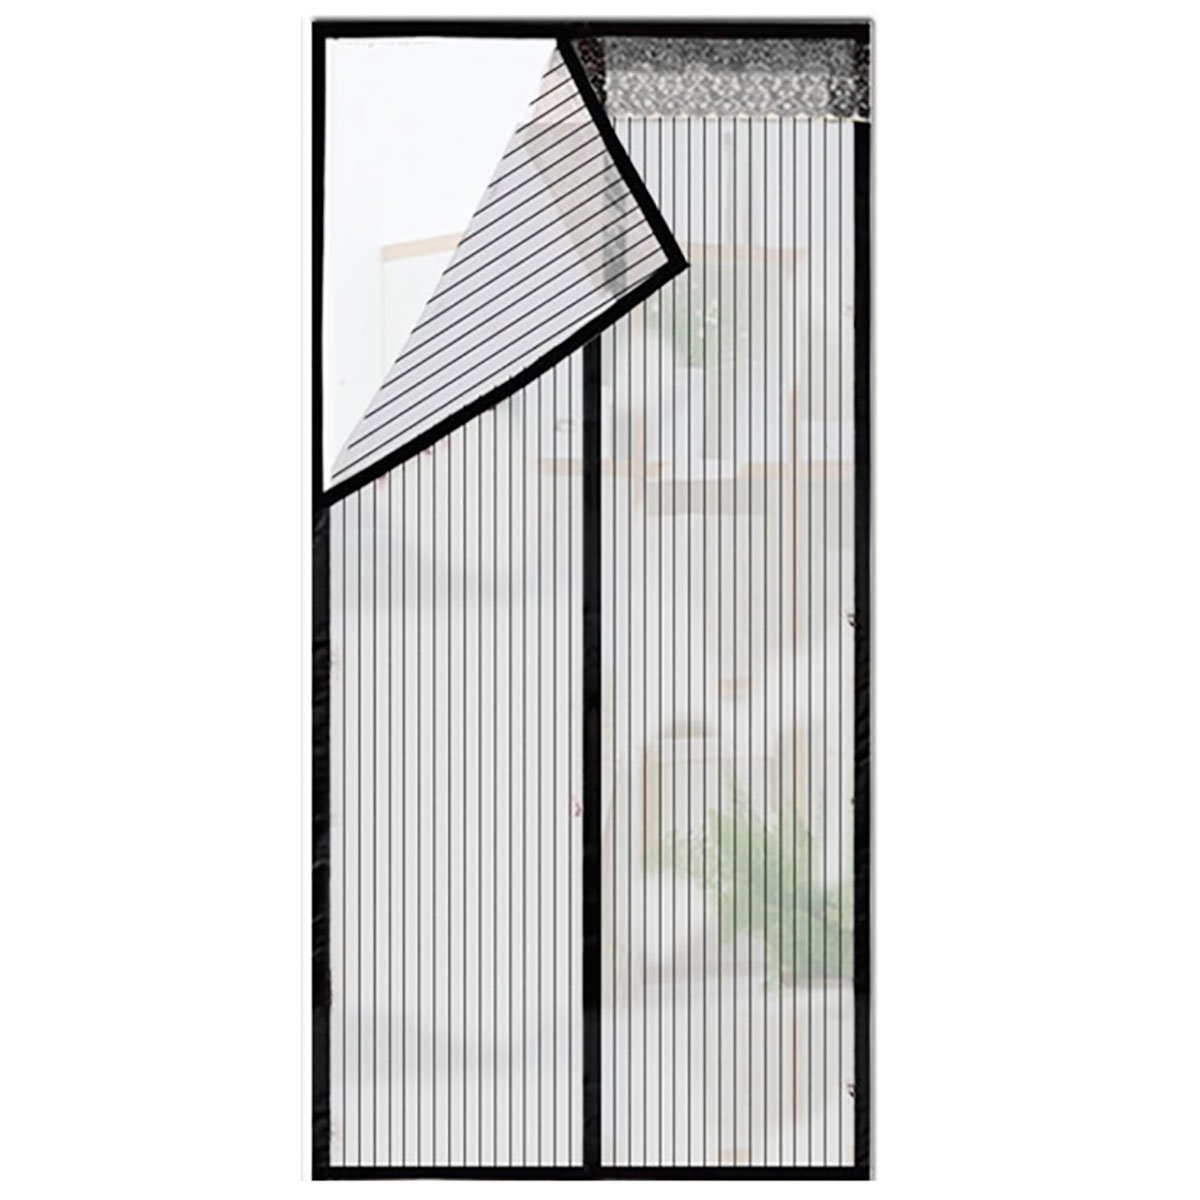 Q&F Magnetic Screen Door,Mesh Curtains For French Doors,Sliding Doors,Garage,Fishing Boat,Super Quiet,Hands Free-let Fresh Air In-black 120x260cm(47x102inch)